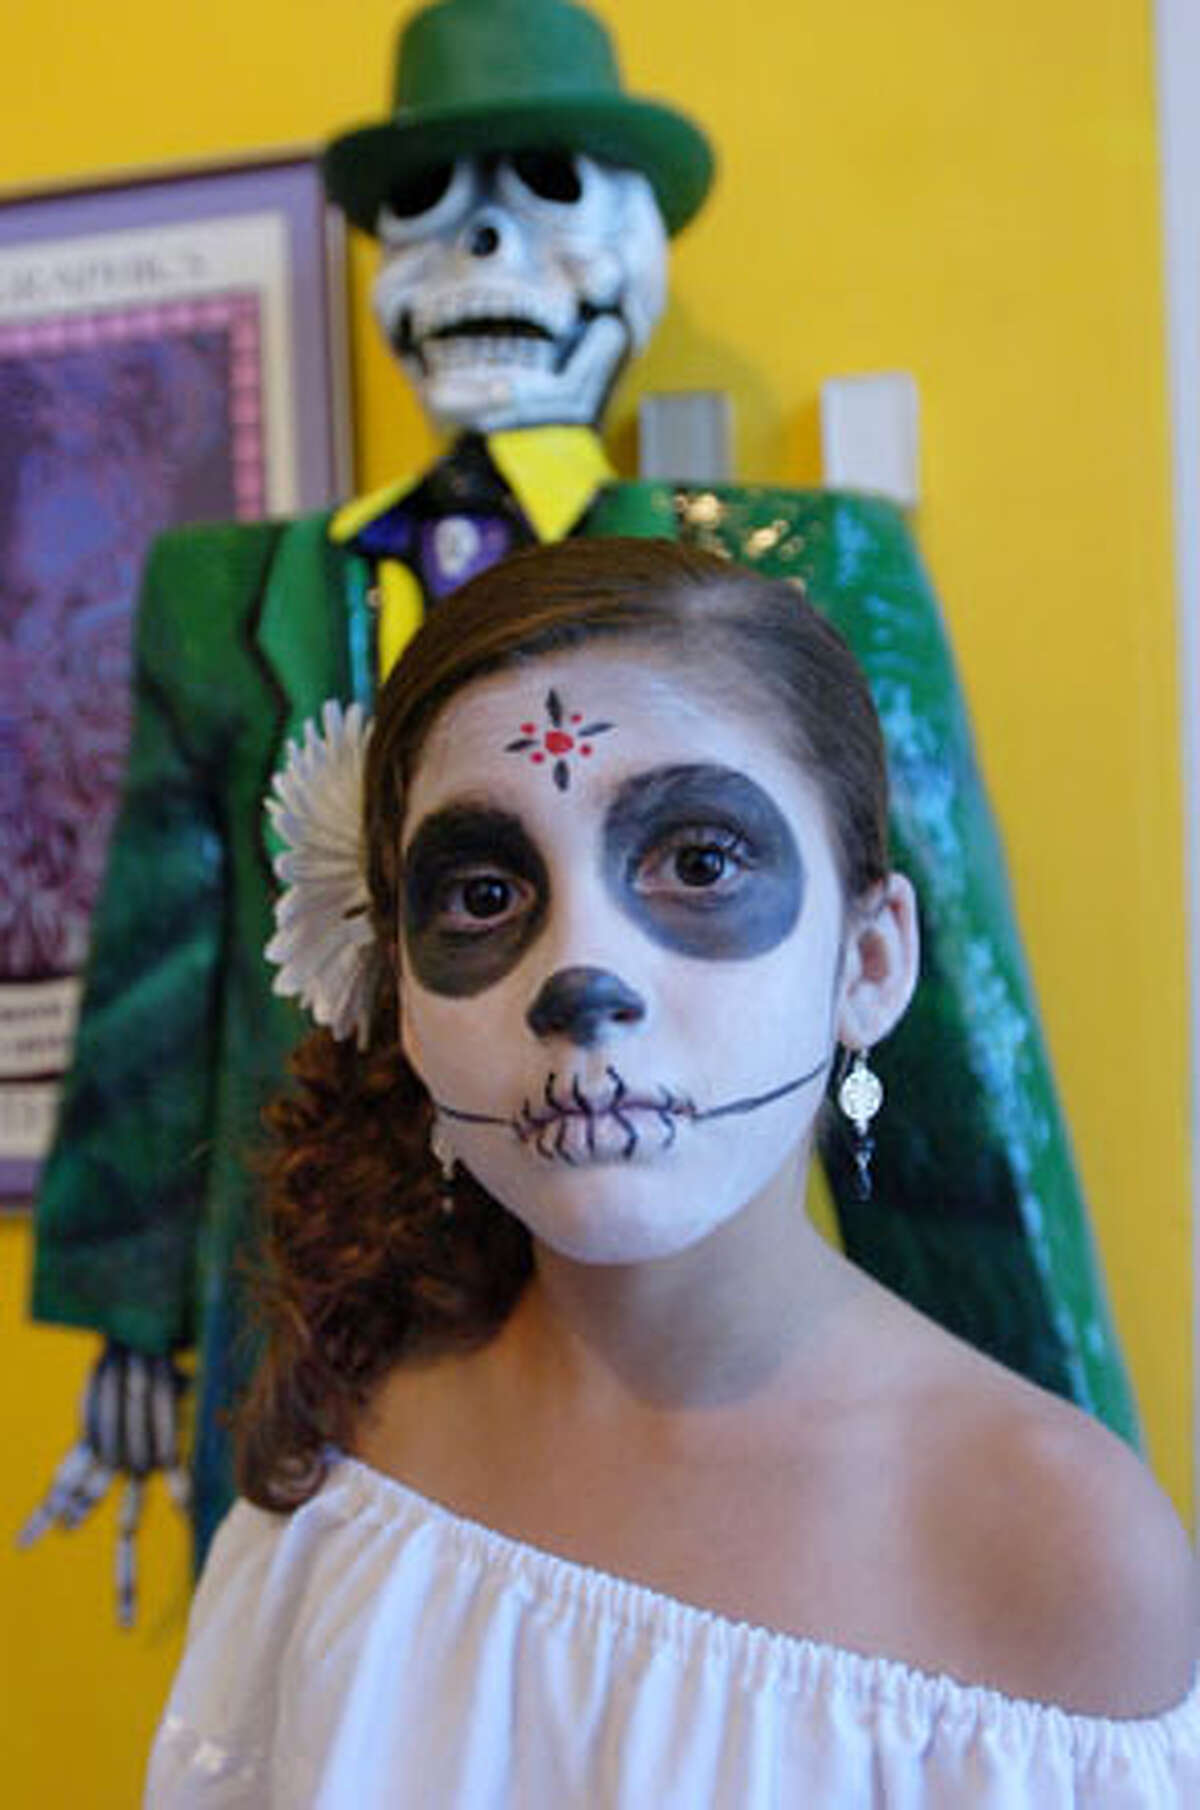 Sophia Caballero, 10, of Beaumont, stands before an ofrendas (offerings) table dressed as La Catrina during a Dia de los Muertos (Day of the Dead) event on Saturday at the Art Museum of Southeast Texas. Each year the museum, through exhibitions and hands on art projects, teaches children about the Mexican holiday and its significance in the culture. October 30, 2010. Valentino Mauricio/The Enterprise